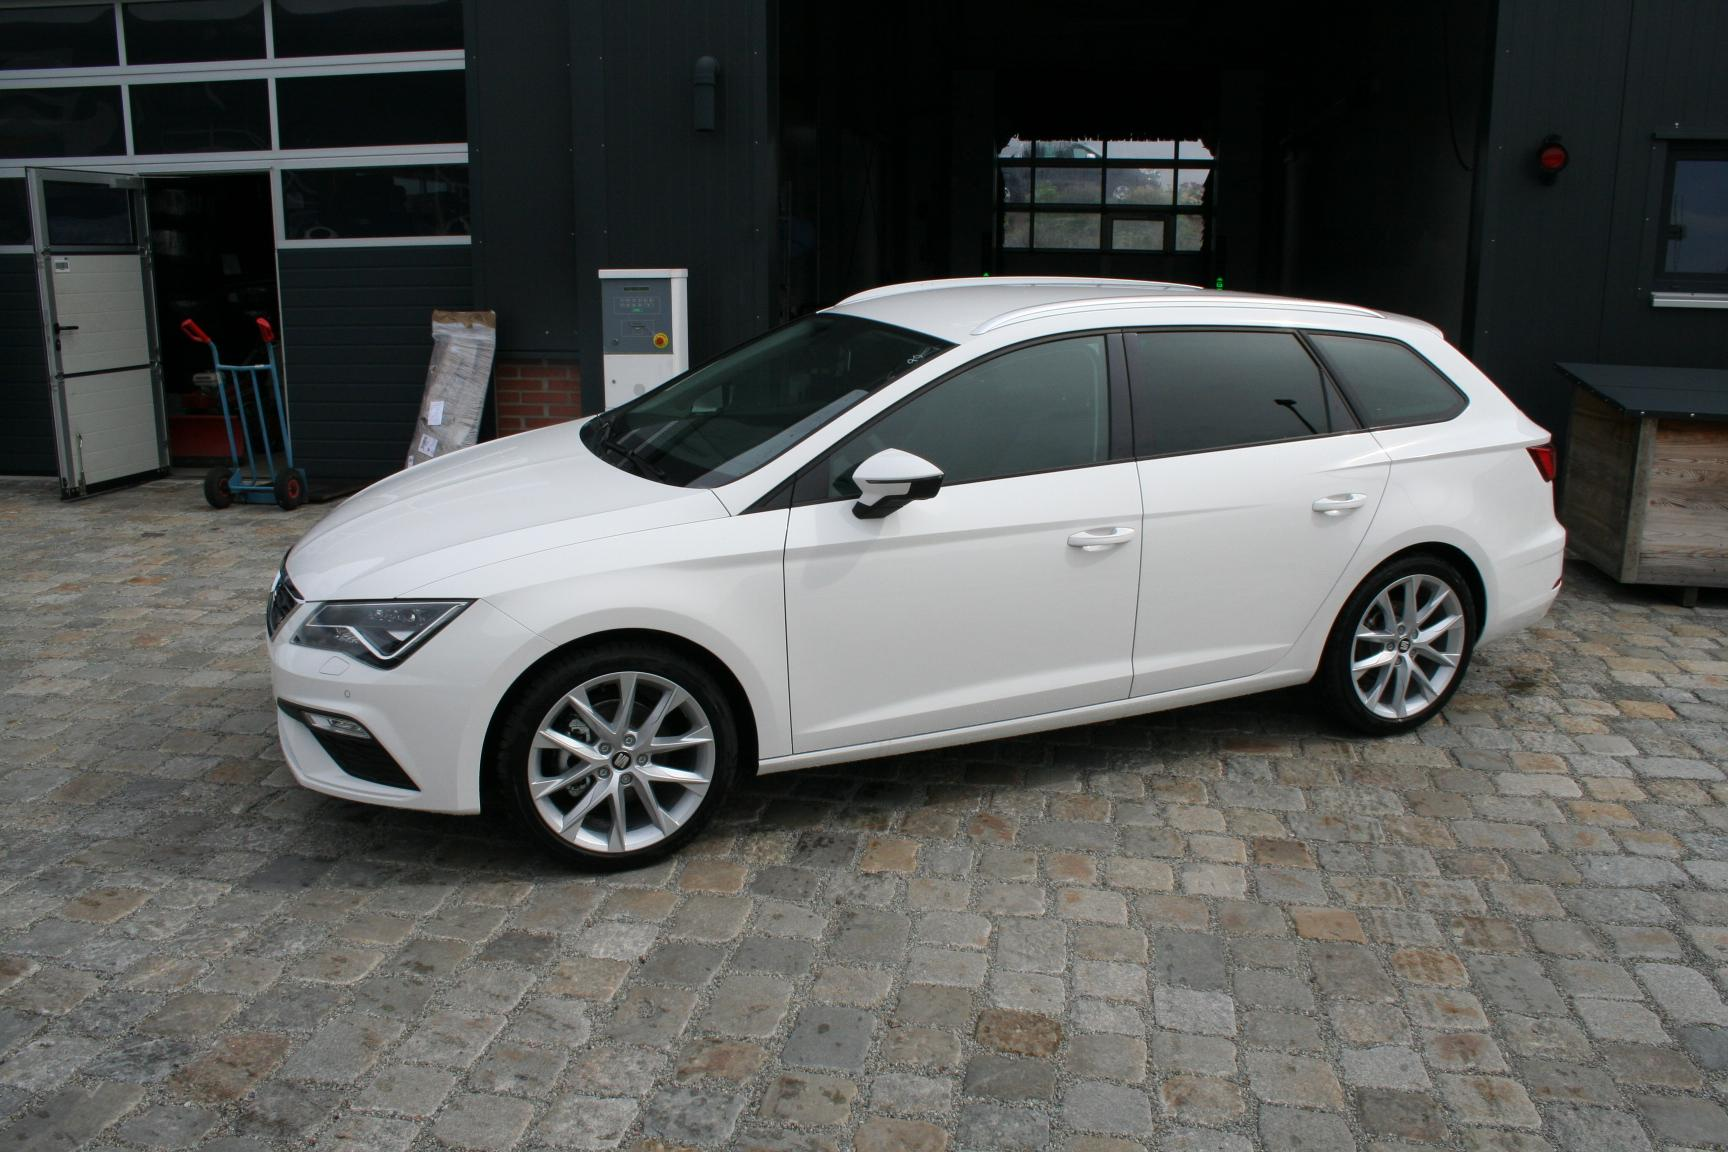 seat leon st facelift 1 4 tsi 125 ps fr climatronic 18. Black Bedroom Furniture Sets. Home Design Ideas